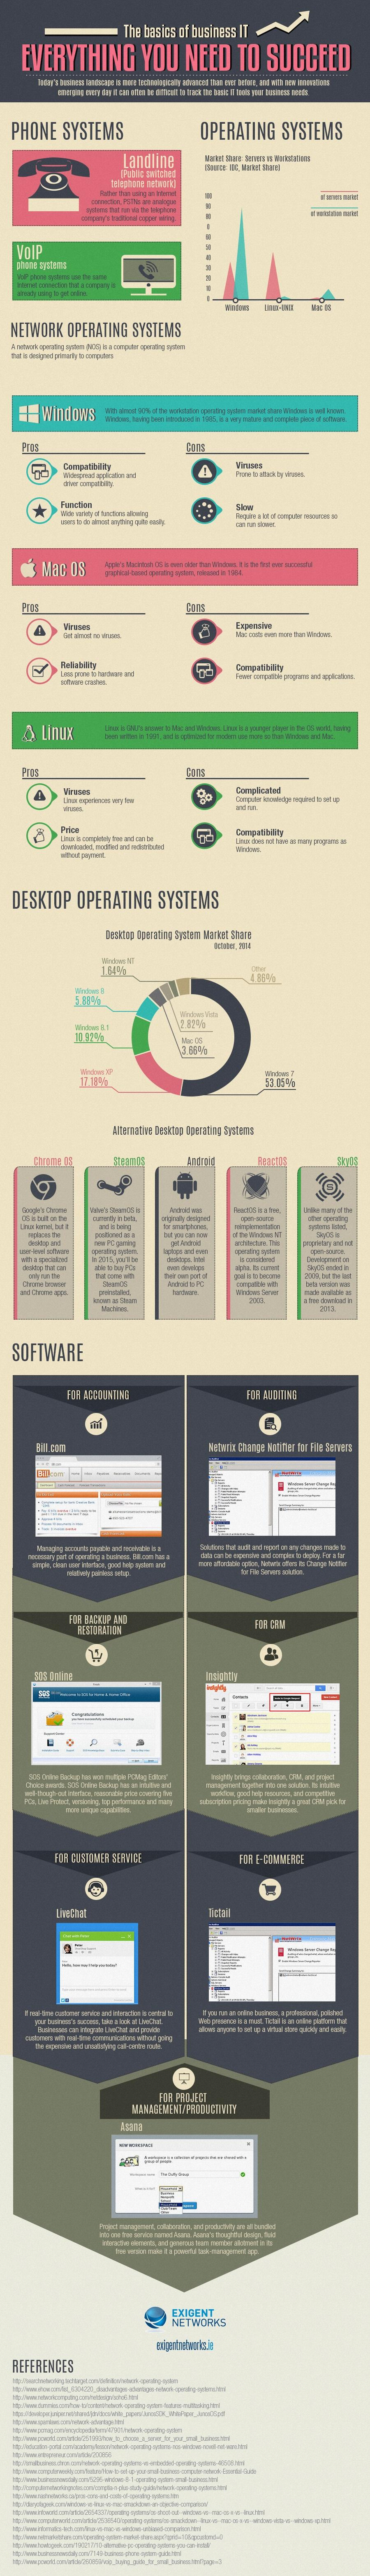 Basics of Business IT [Infographic]